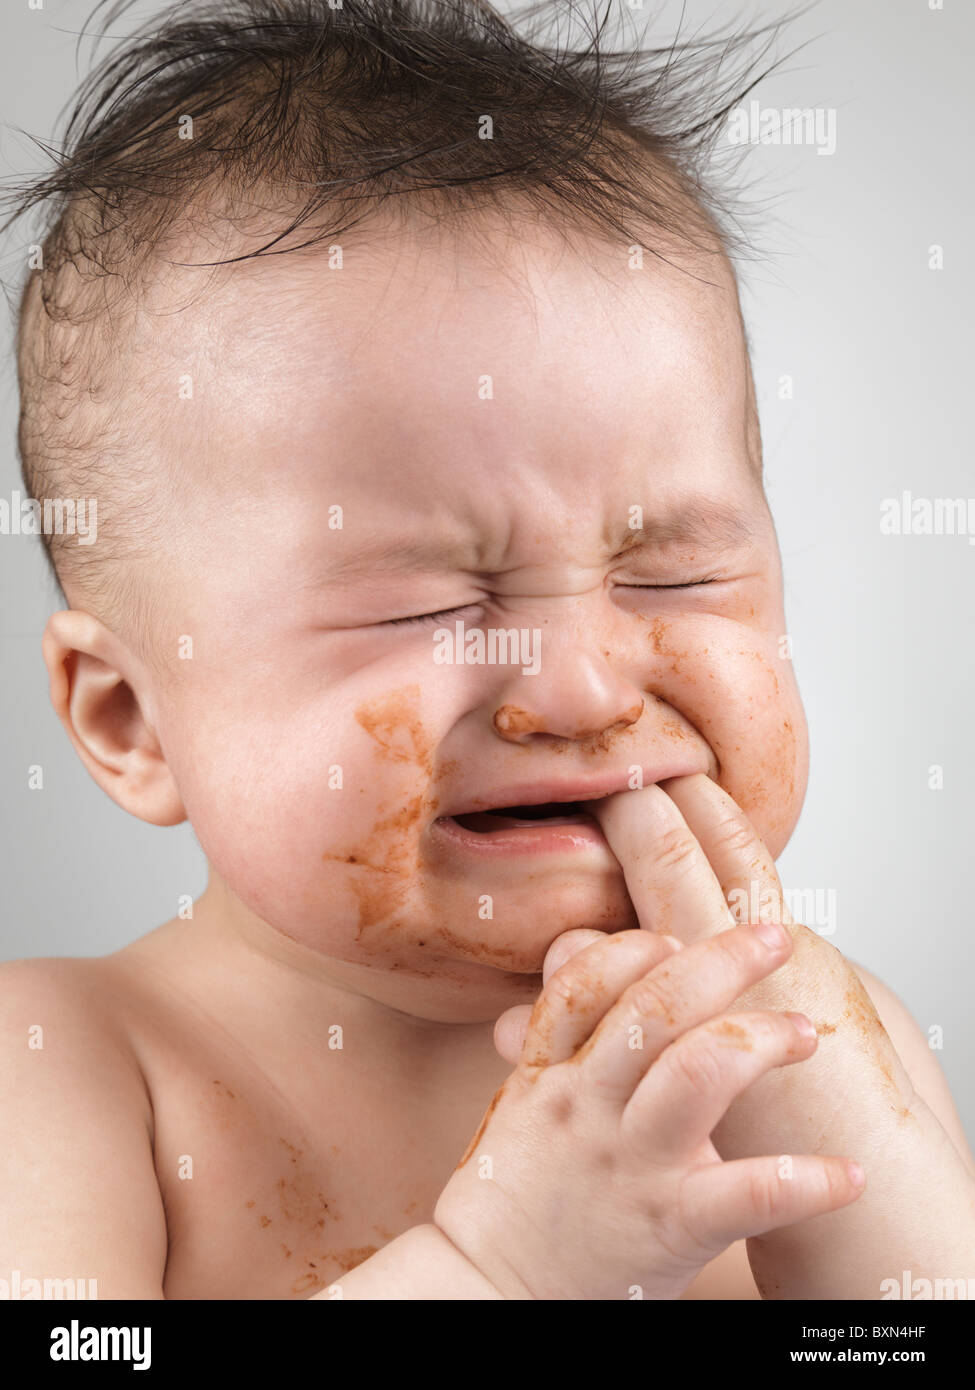 Artistic portrait of a crying seven month old baby boy with messy hair and smudged with food face Stock Photo